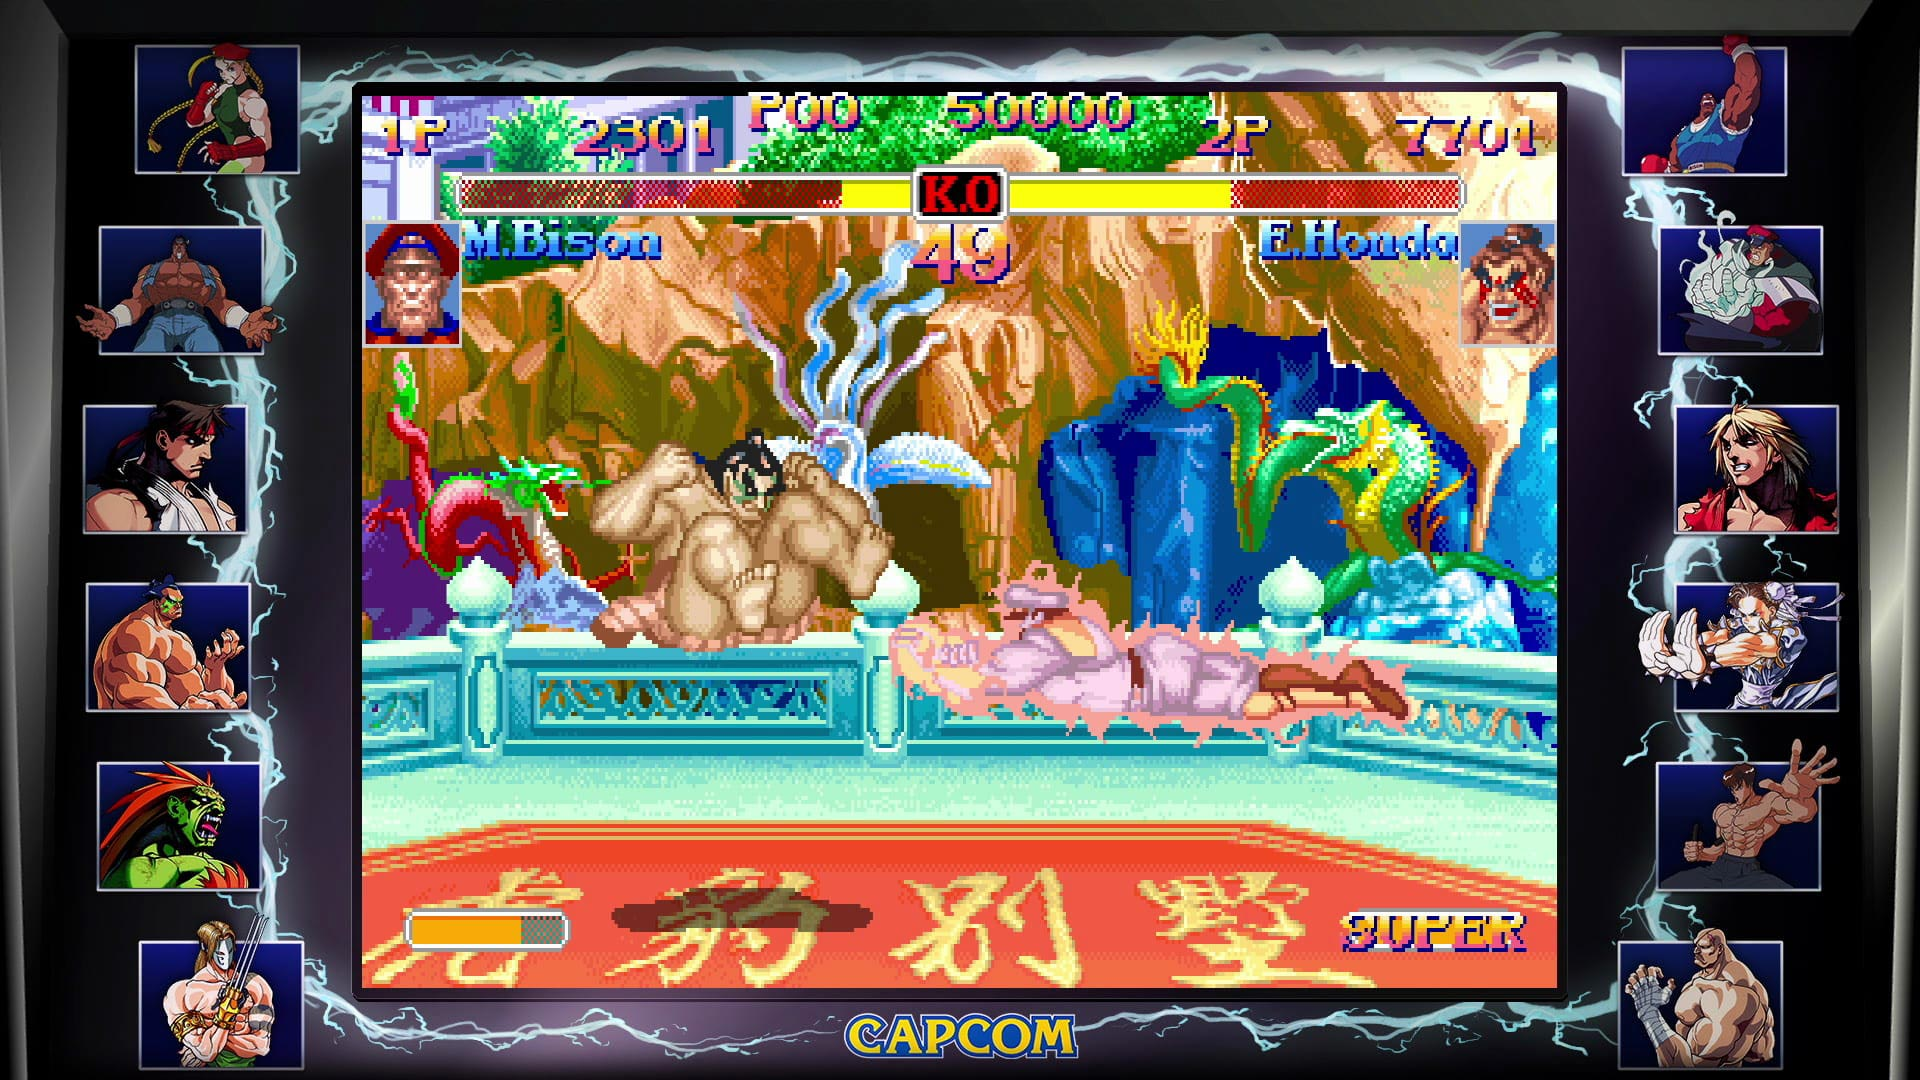 Street Fighter 30th Anniversary Collection images 5 out of 17 image gallery